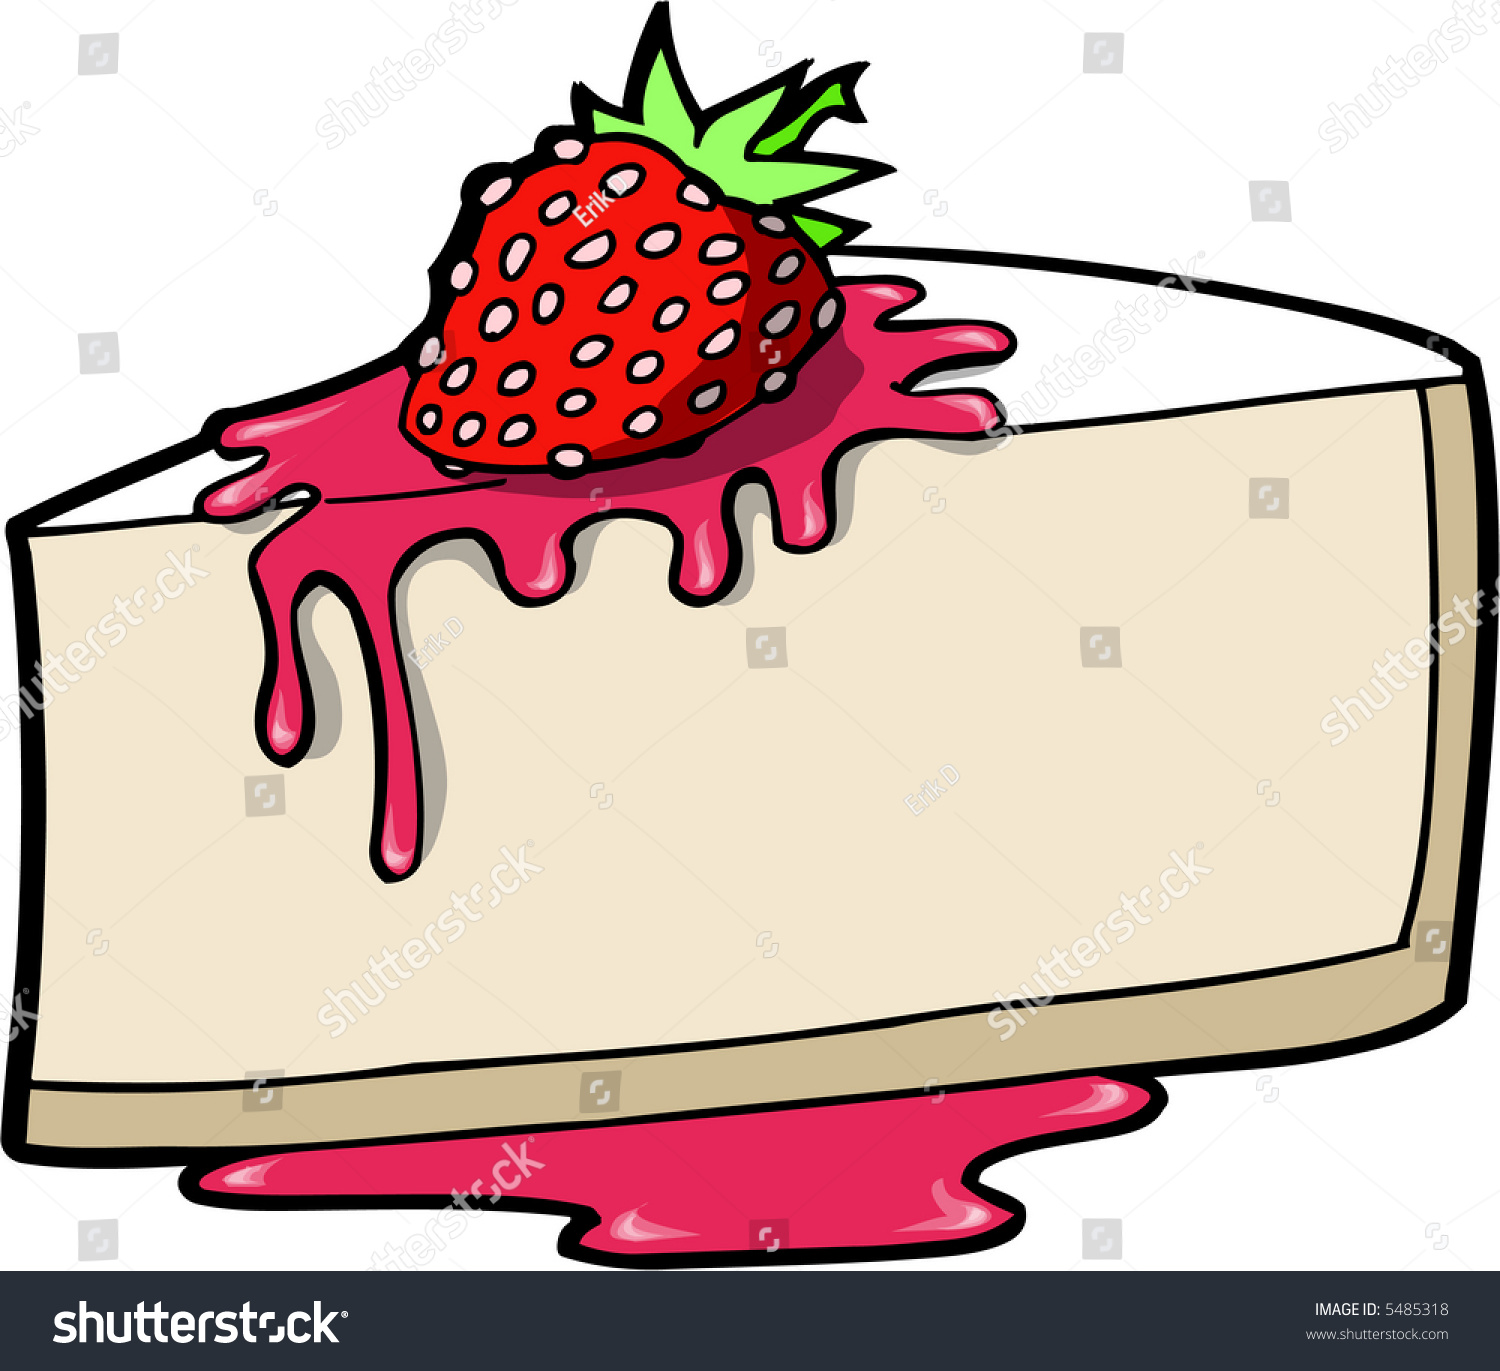 Cheesecake Images Clip Art : Cheese Cake Vector Illustration - 5485318 : Shutterstock